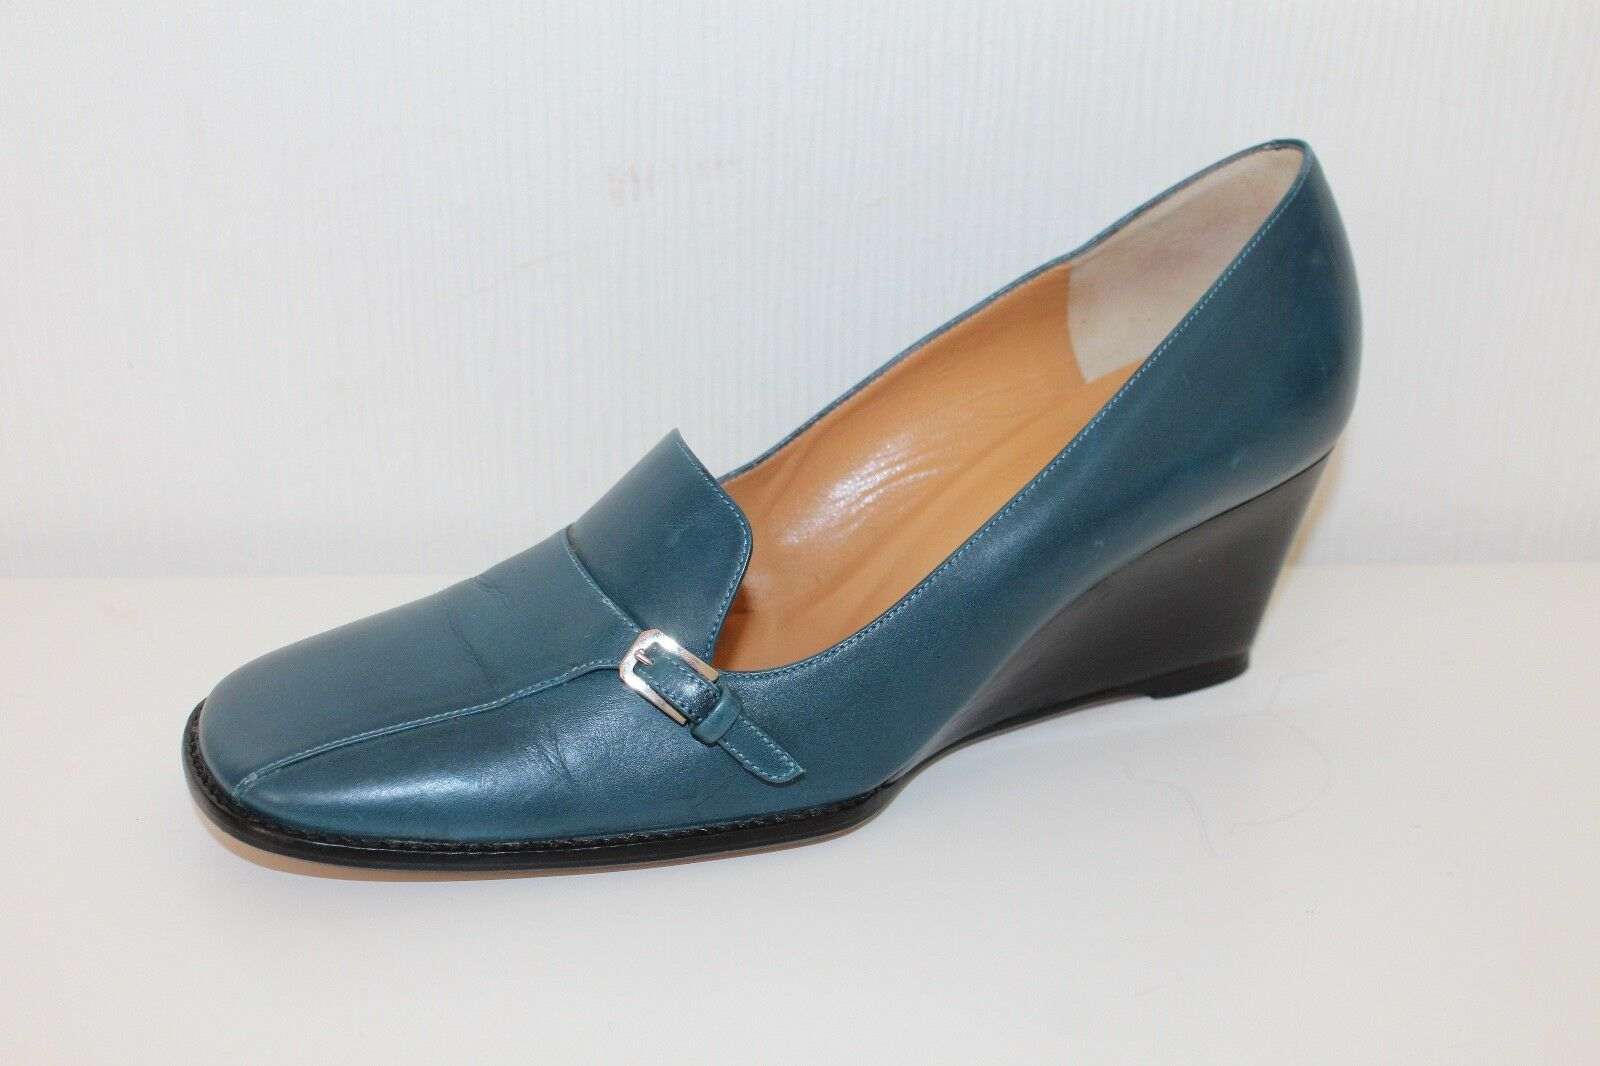 BALLY Donna Scarpe in pelle PUMPS Zeppa Zeppa Slipper Turchese 36.5 uk3, 5 scarpe